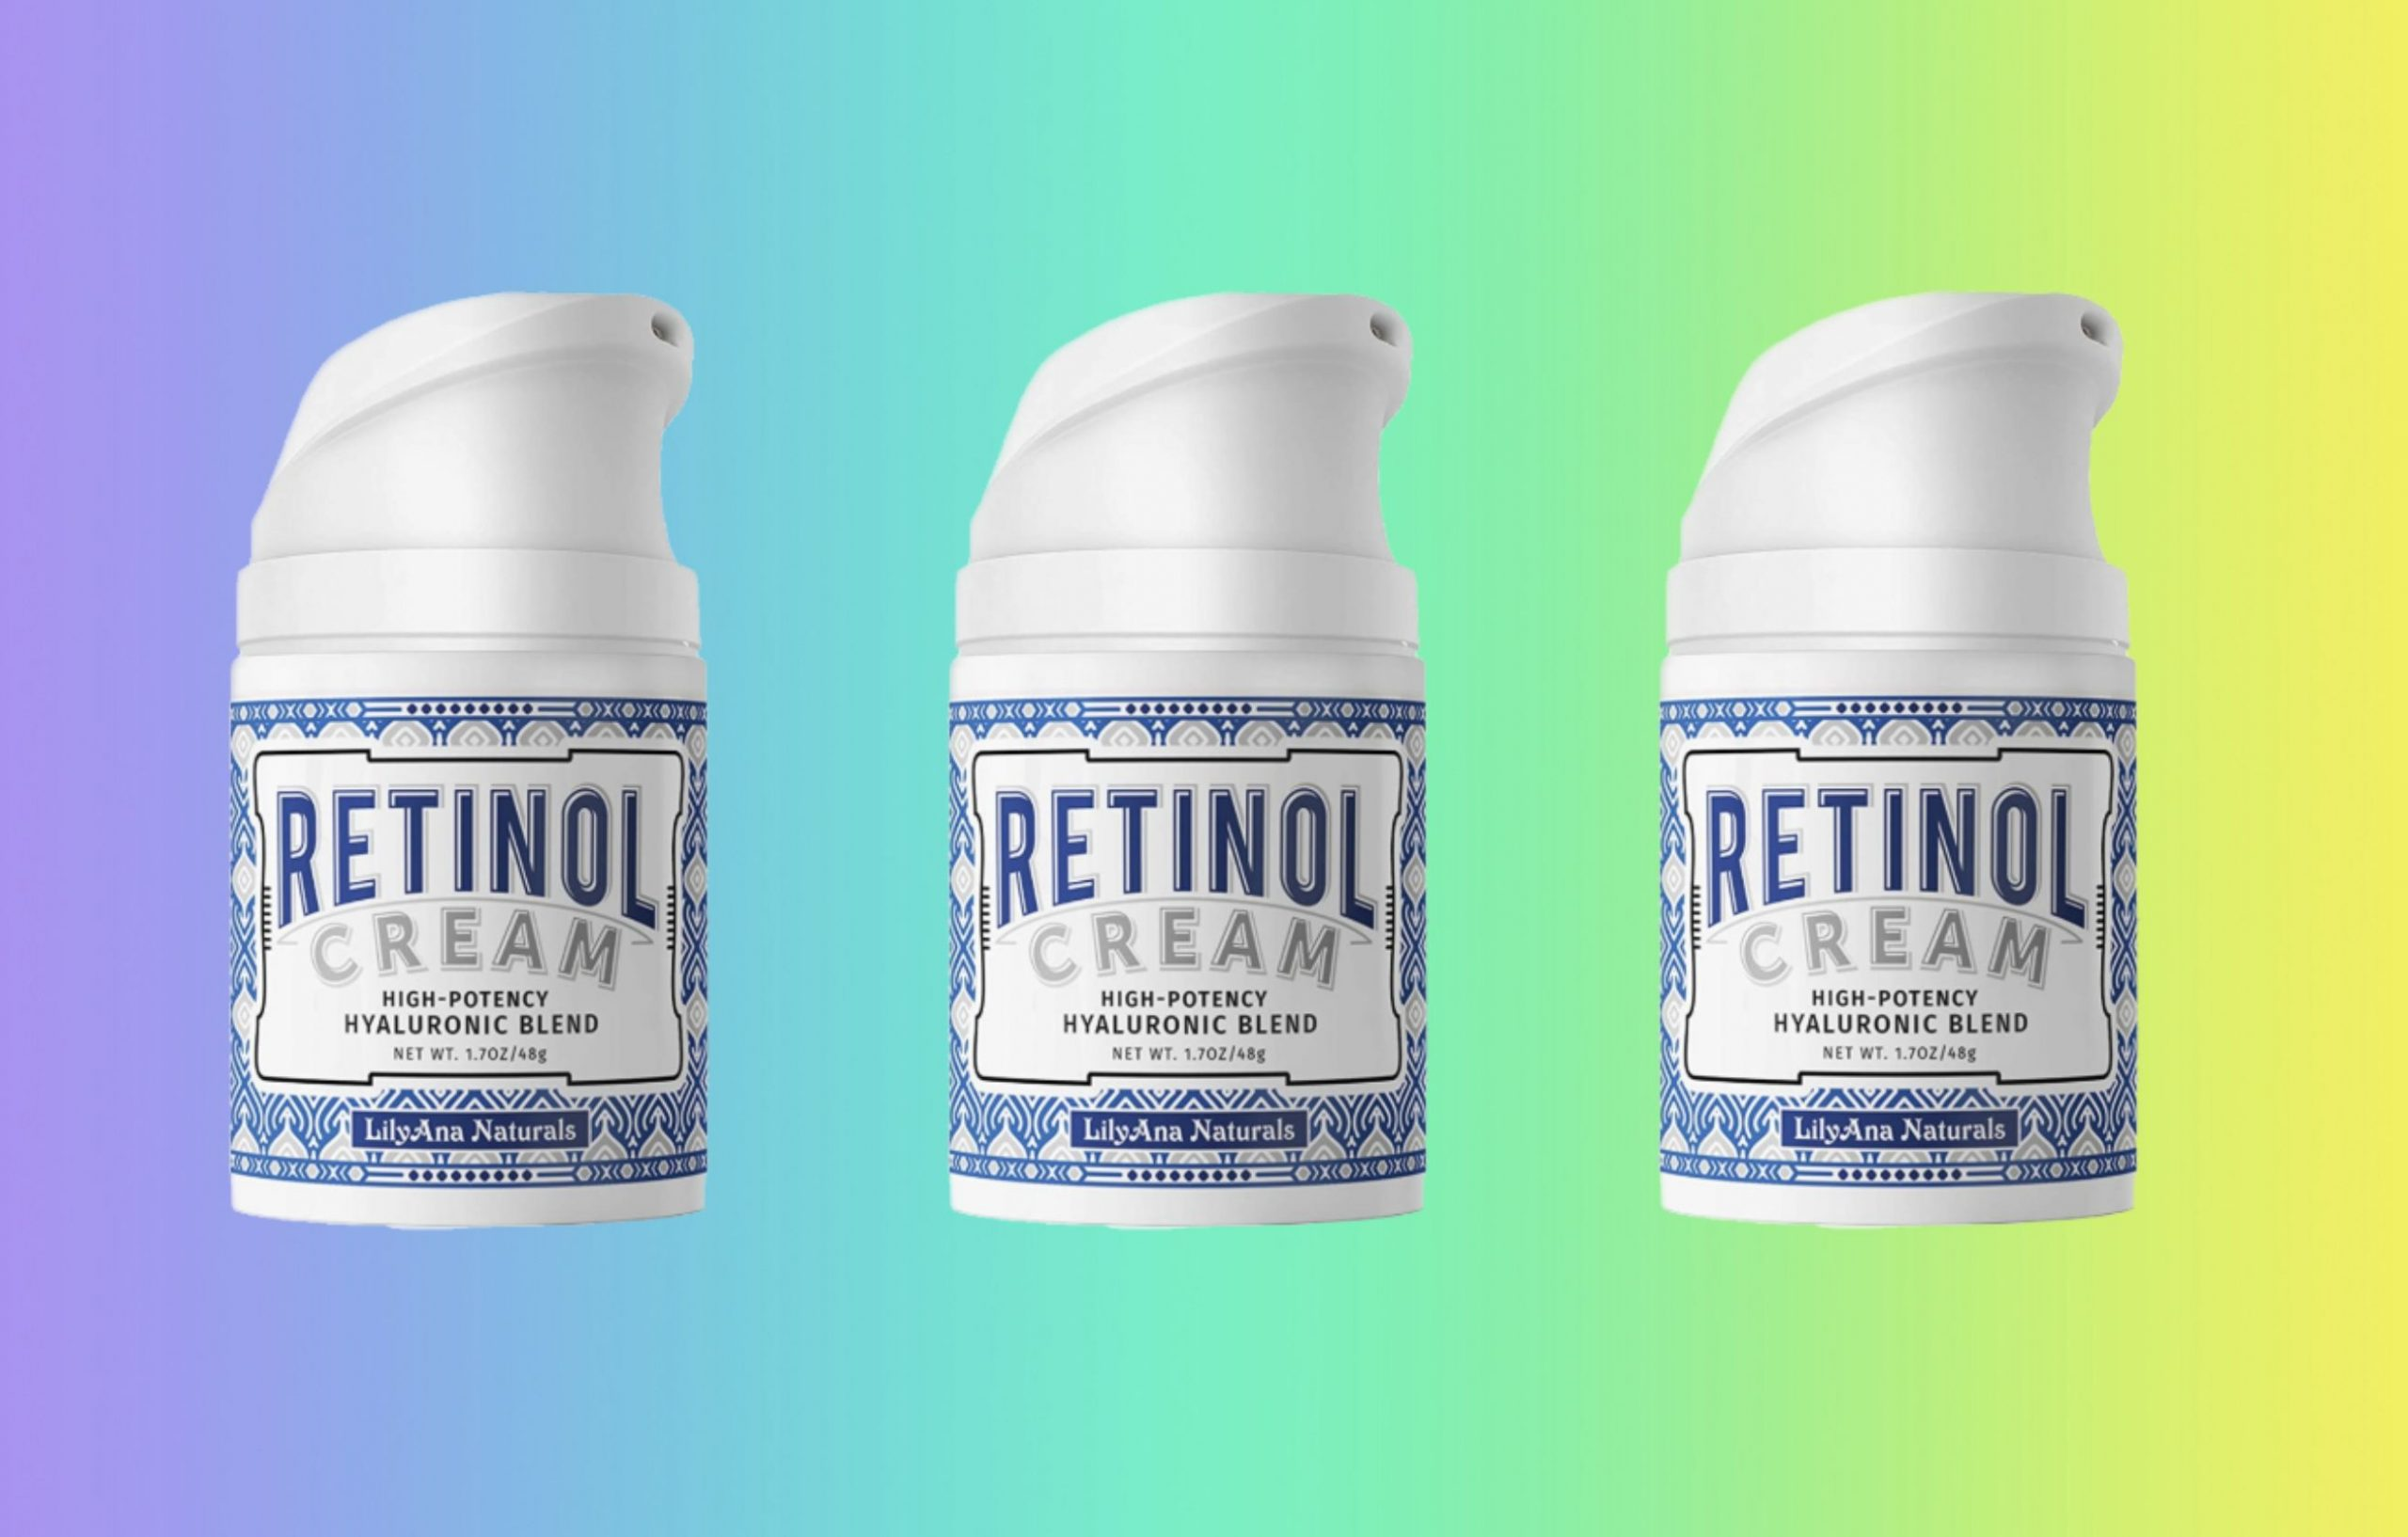 This $23 retinol cream 'works miracles for acne scarring' — and over 17,000 shoppers swear by it